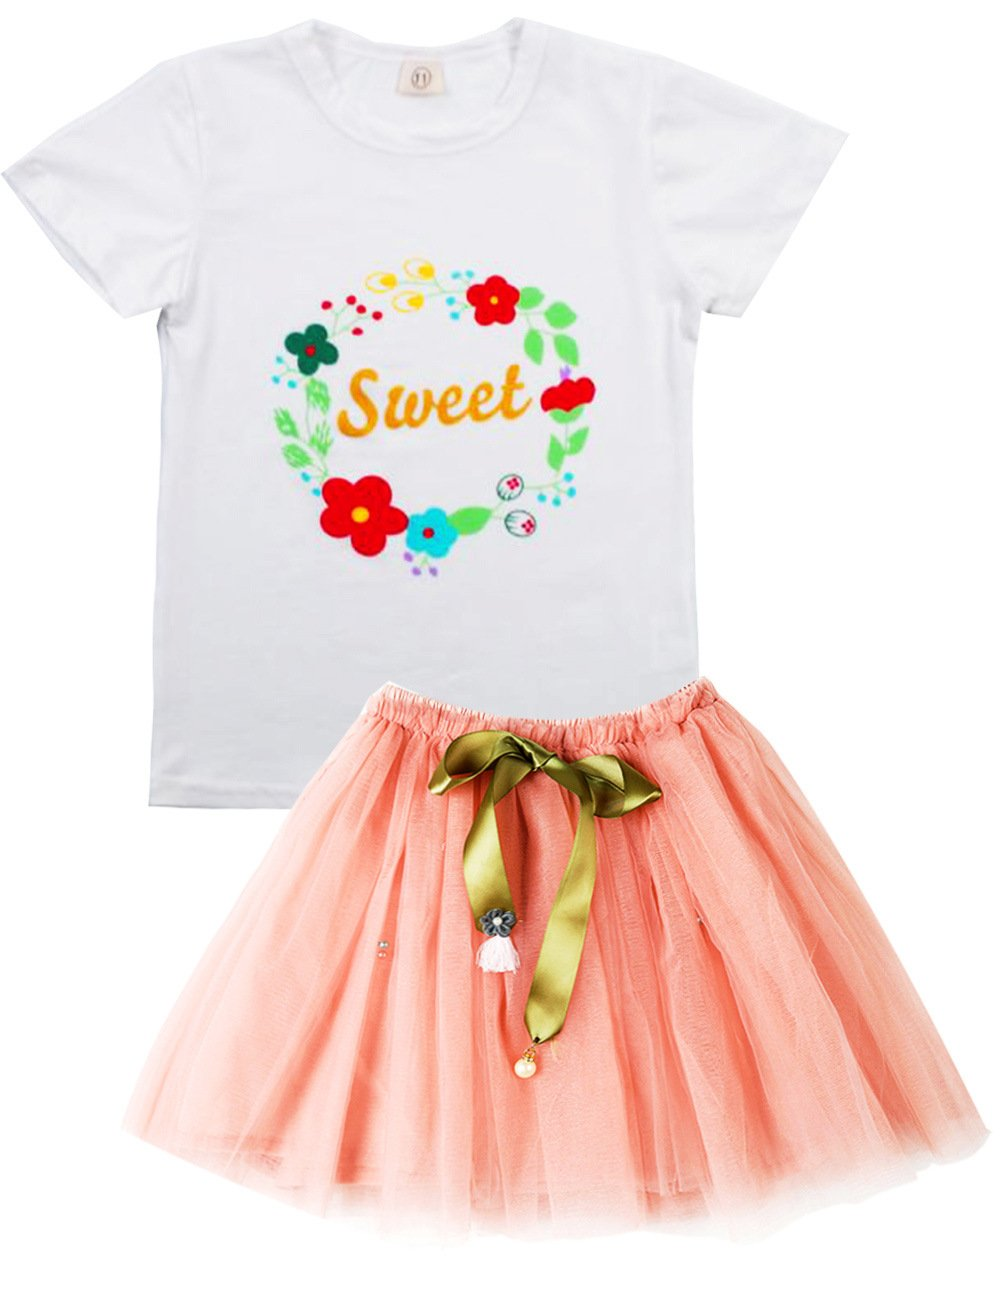 Spring&Gege Little Girls' Clothes Cute Toddler Kids Outfits, Summer Skirt Set Floral Print, Size 7-8 Years, Pink